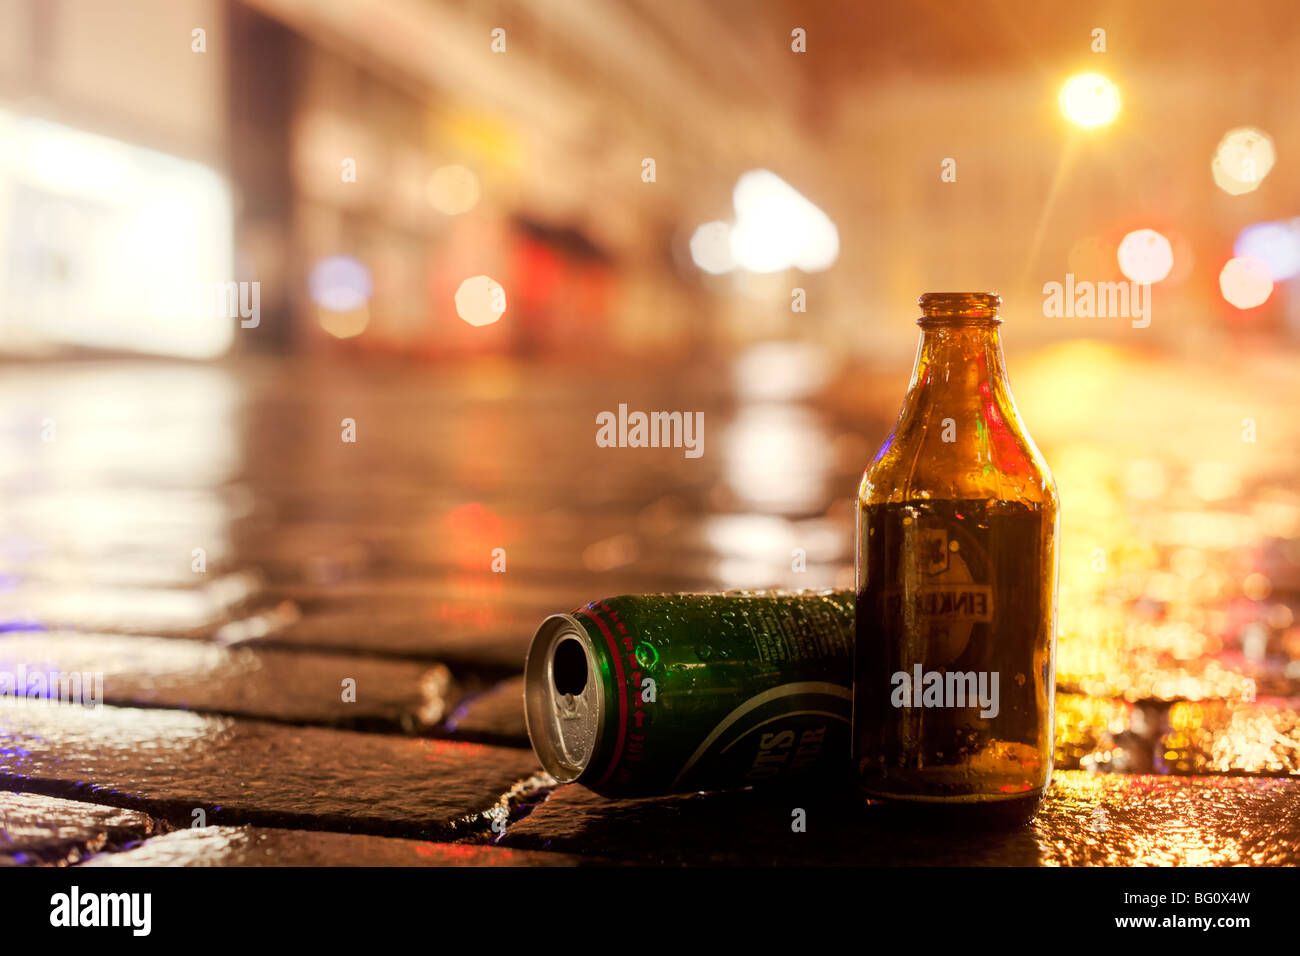 Empty beer containers on wet street - Stock Image